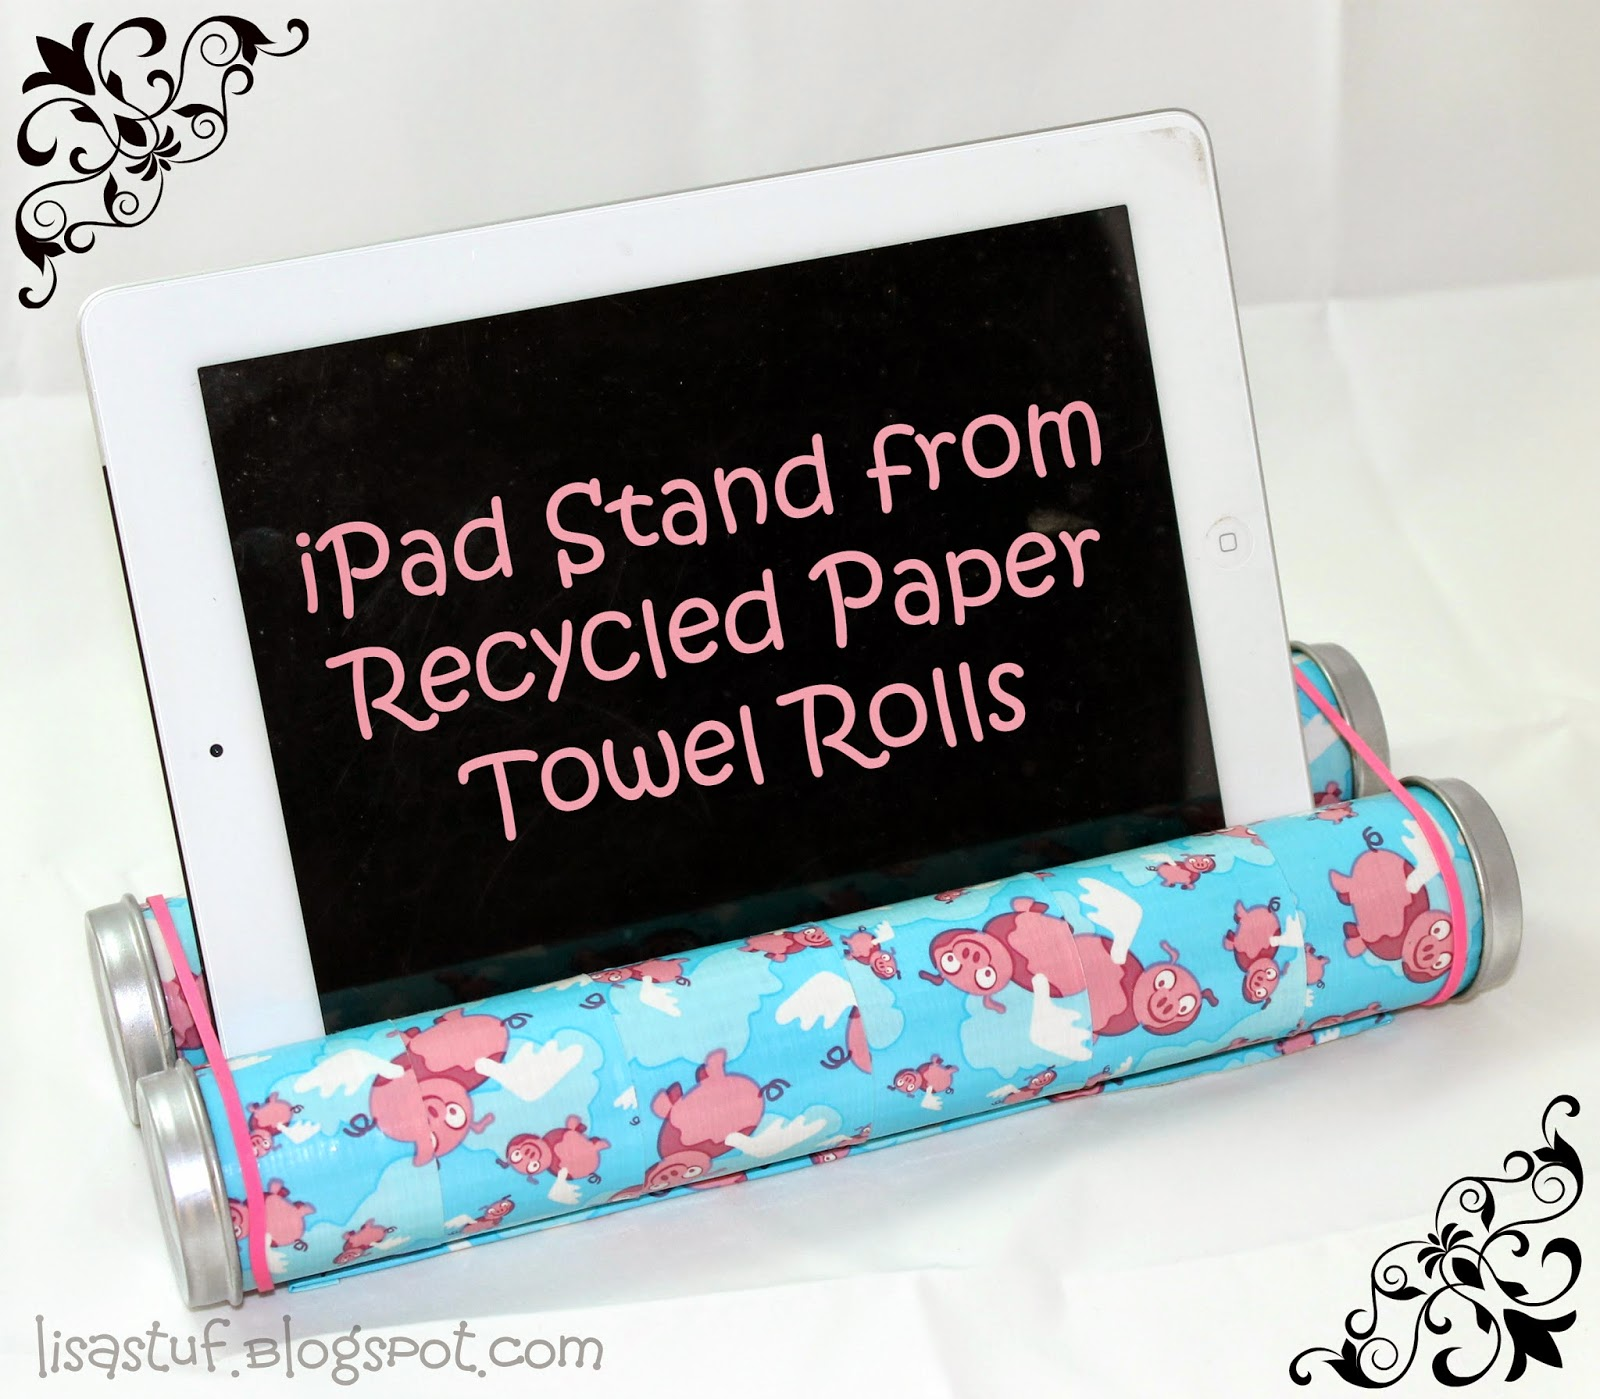 Crafts Made From Paper Towel Rolls: Stuff-n-Such By Lisa: IPad/Tablet Stand From Repurposed